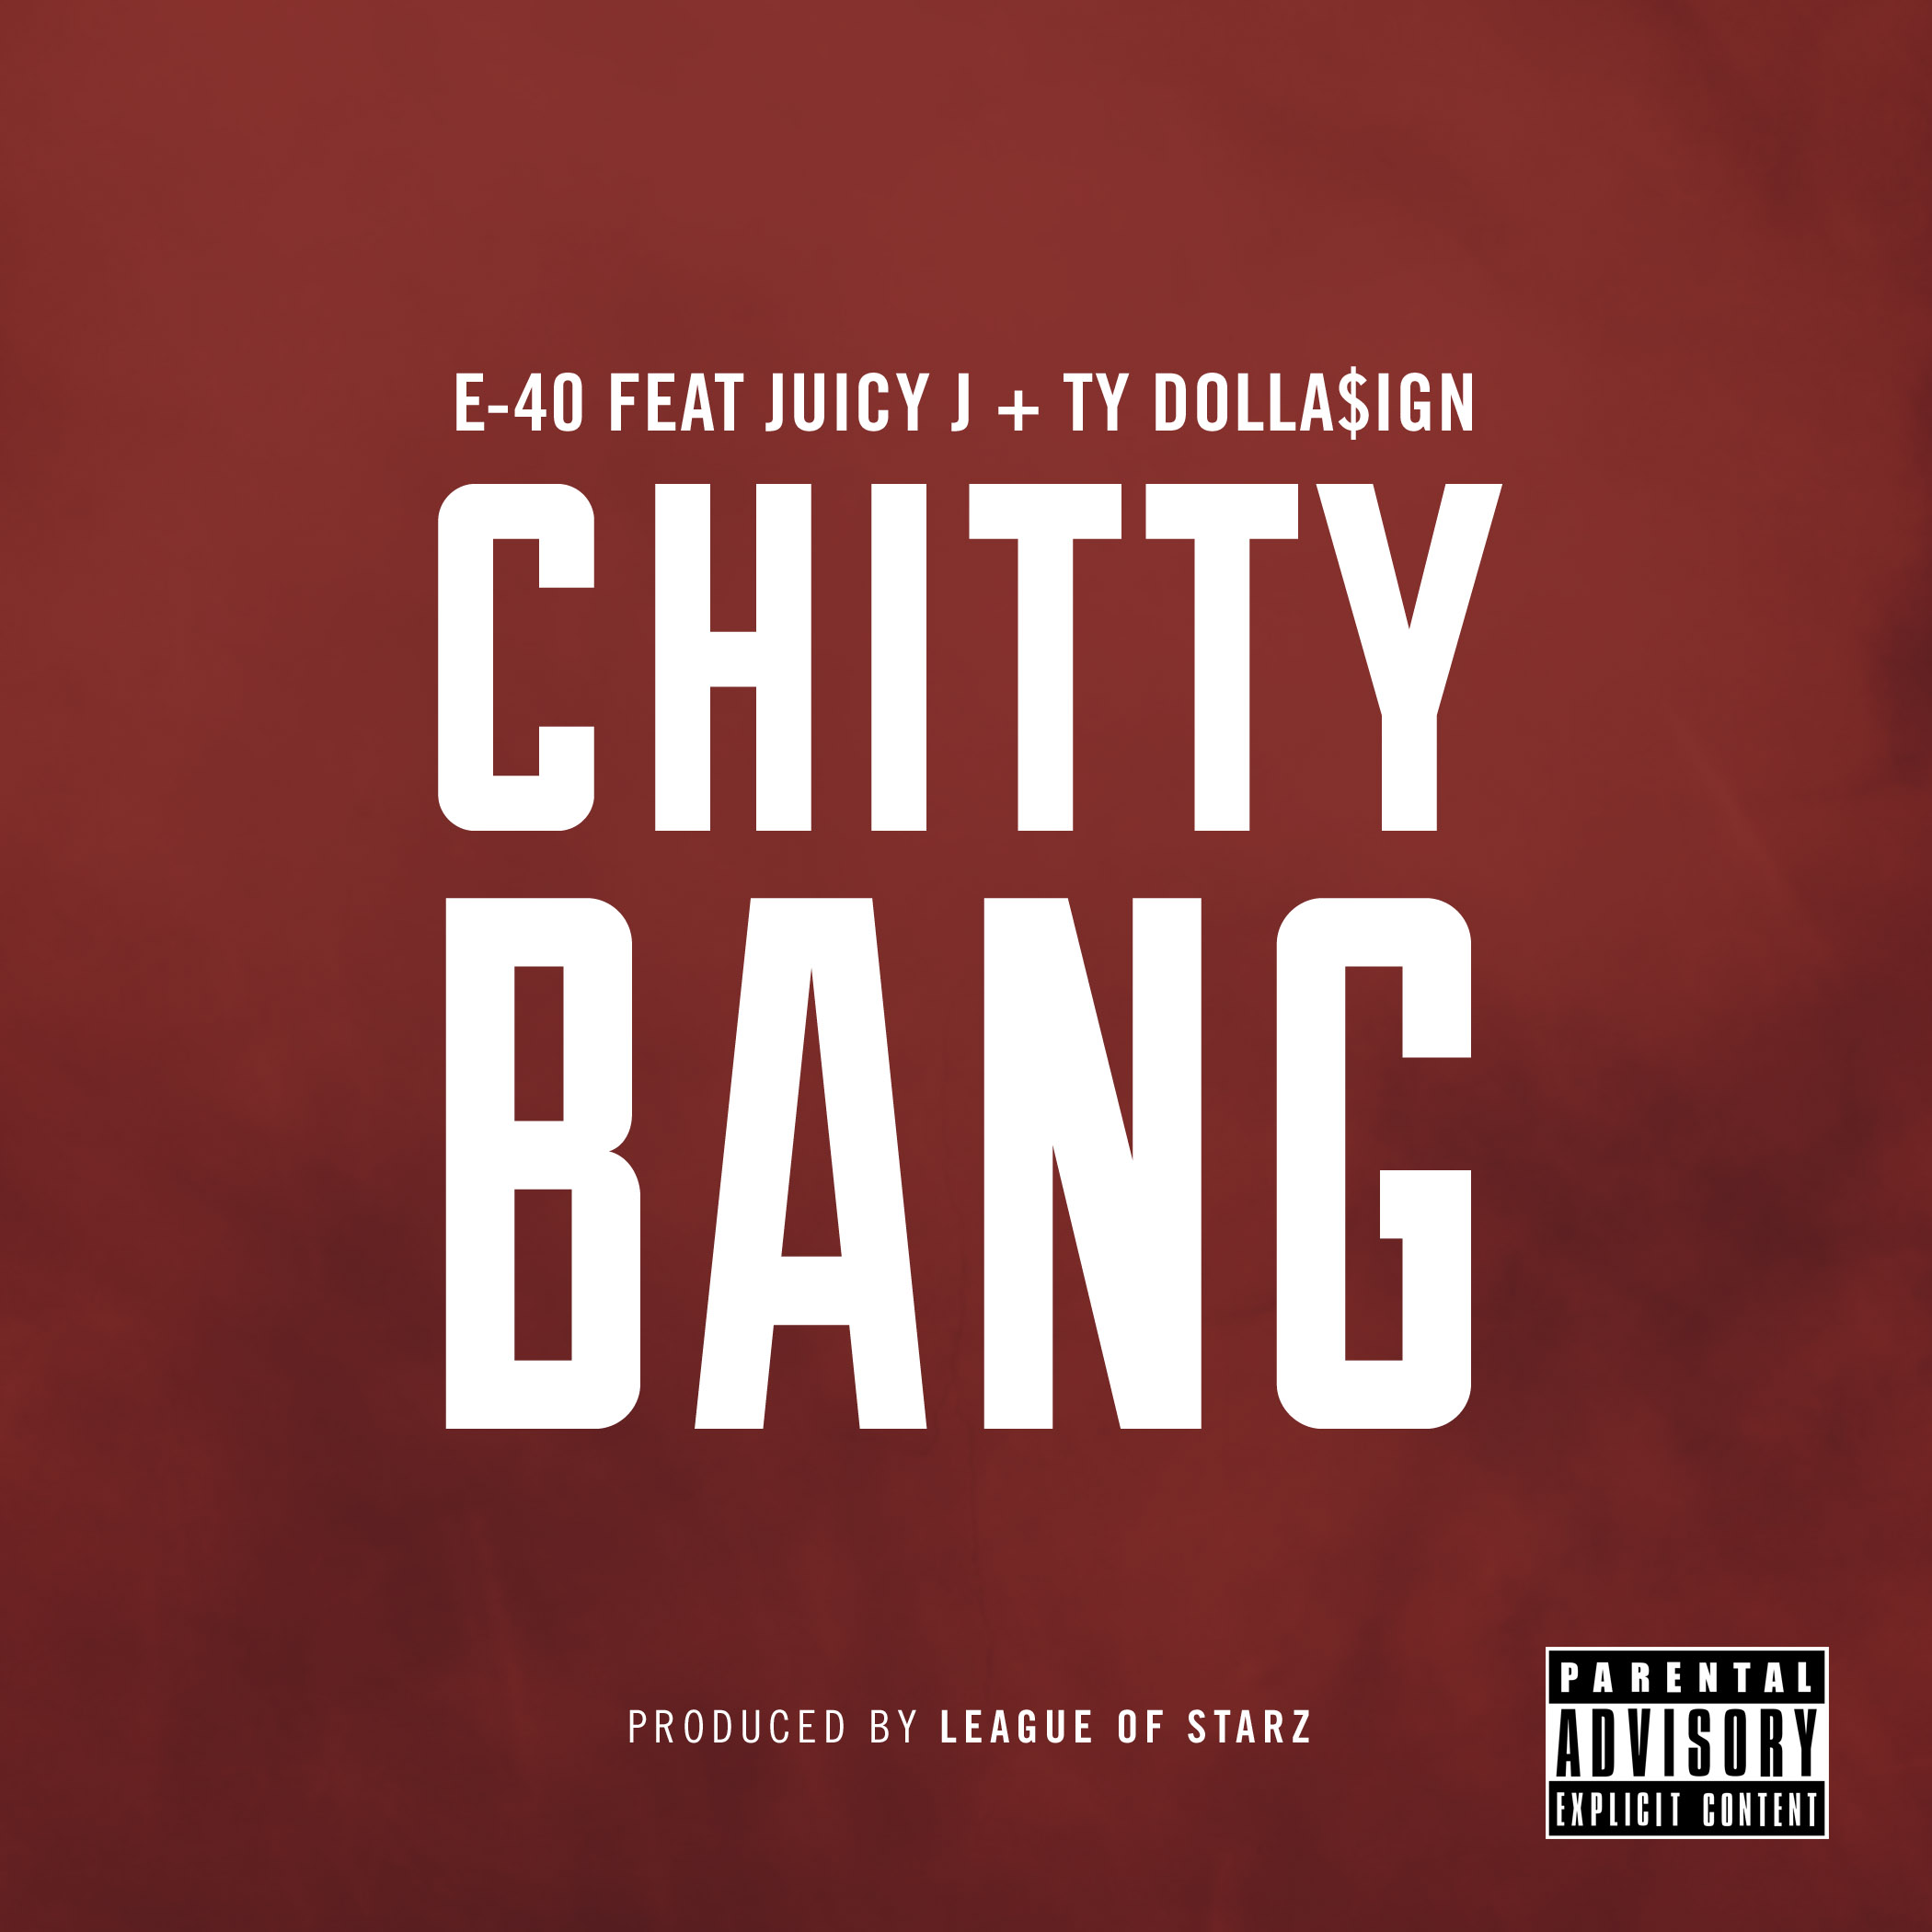 E-40 ft. Juicy J & Ty Dolla $ign - Chitty Bang (prod. League Of Starz) [Thizzler.com]